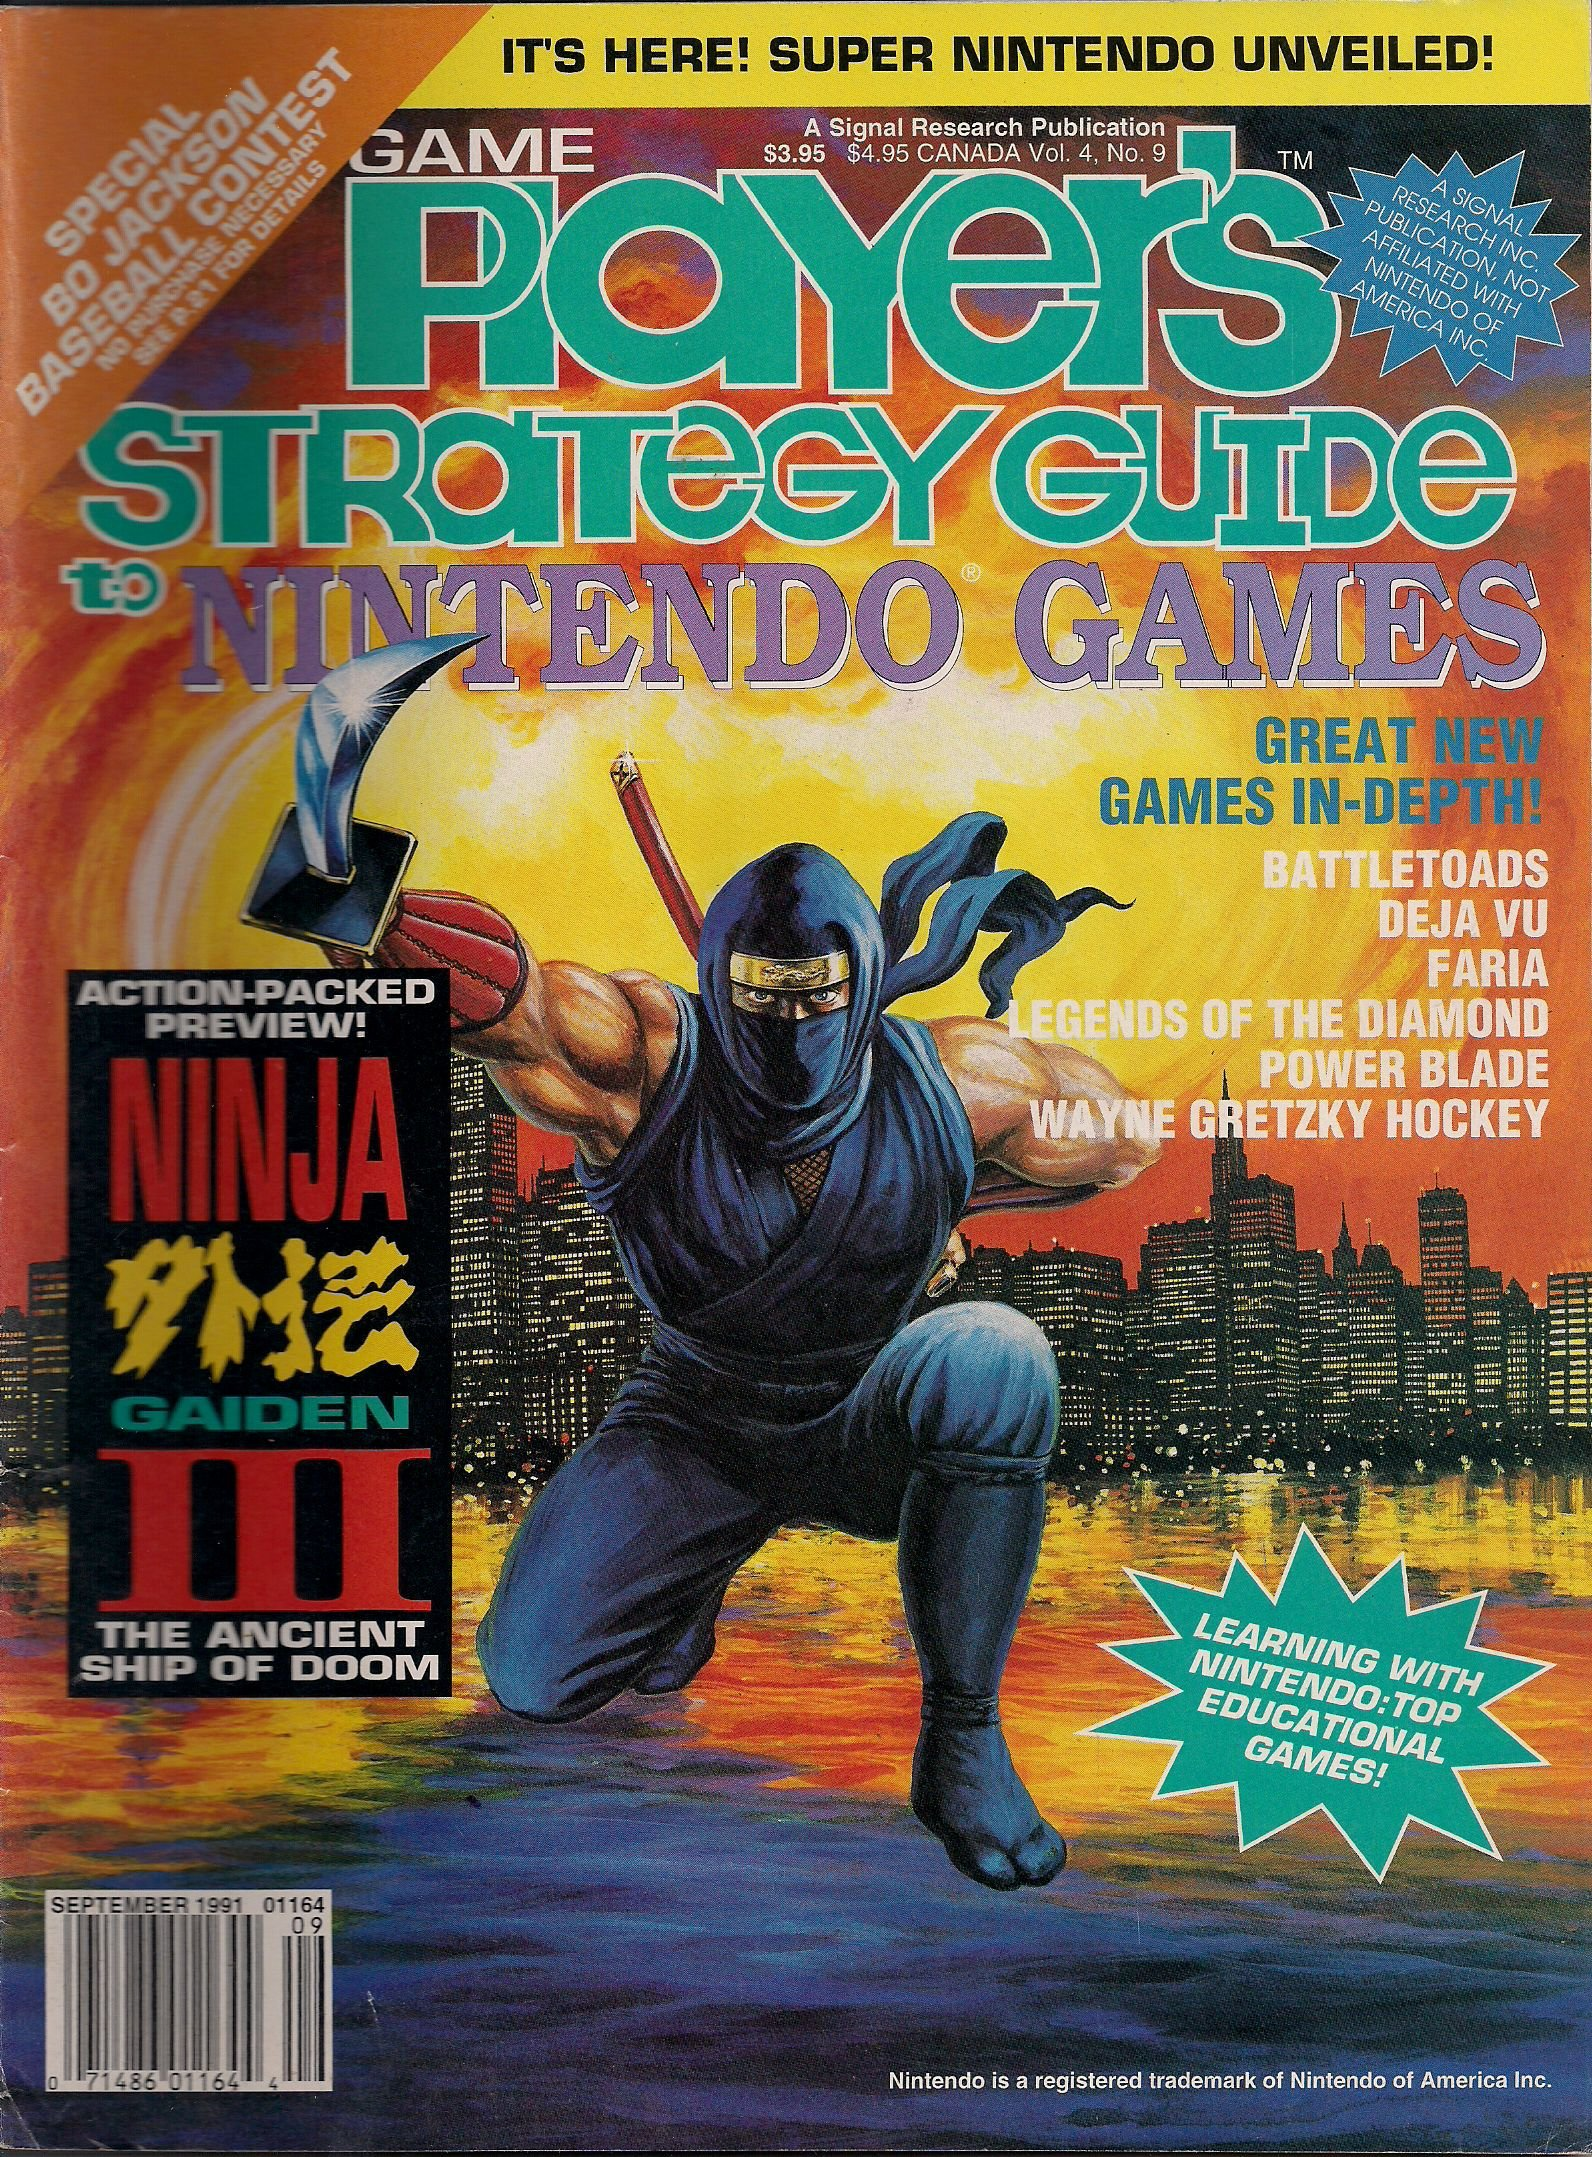 Game Players NINTENDO STRATEGY Guide SEPT 1991 VOL 4 # 9 ...